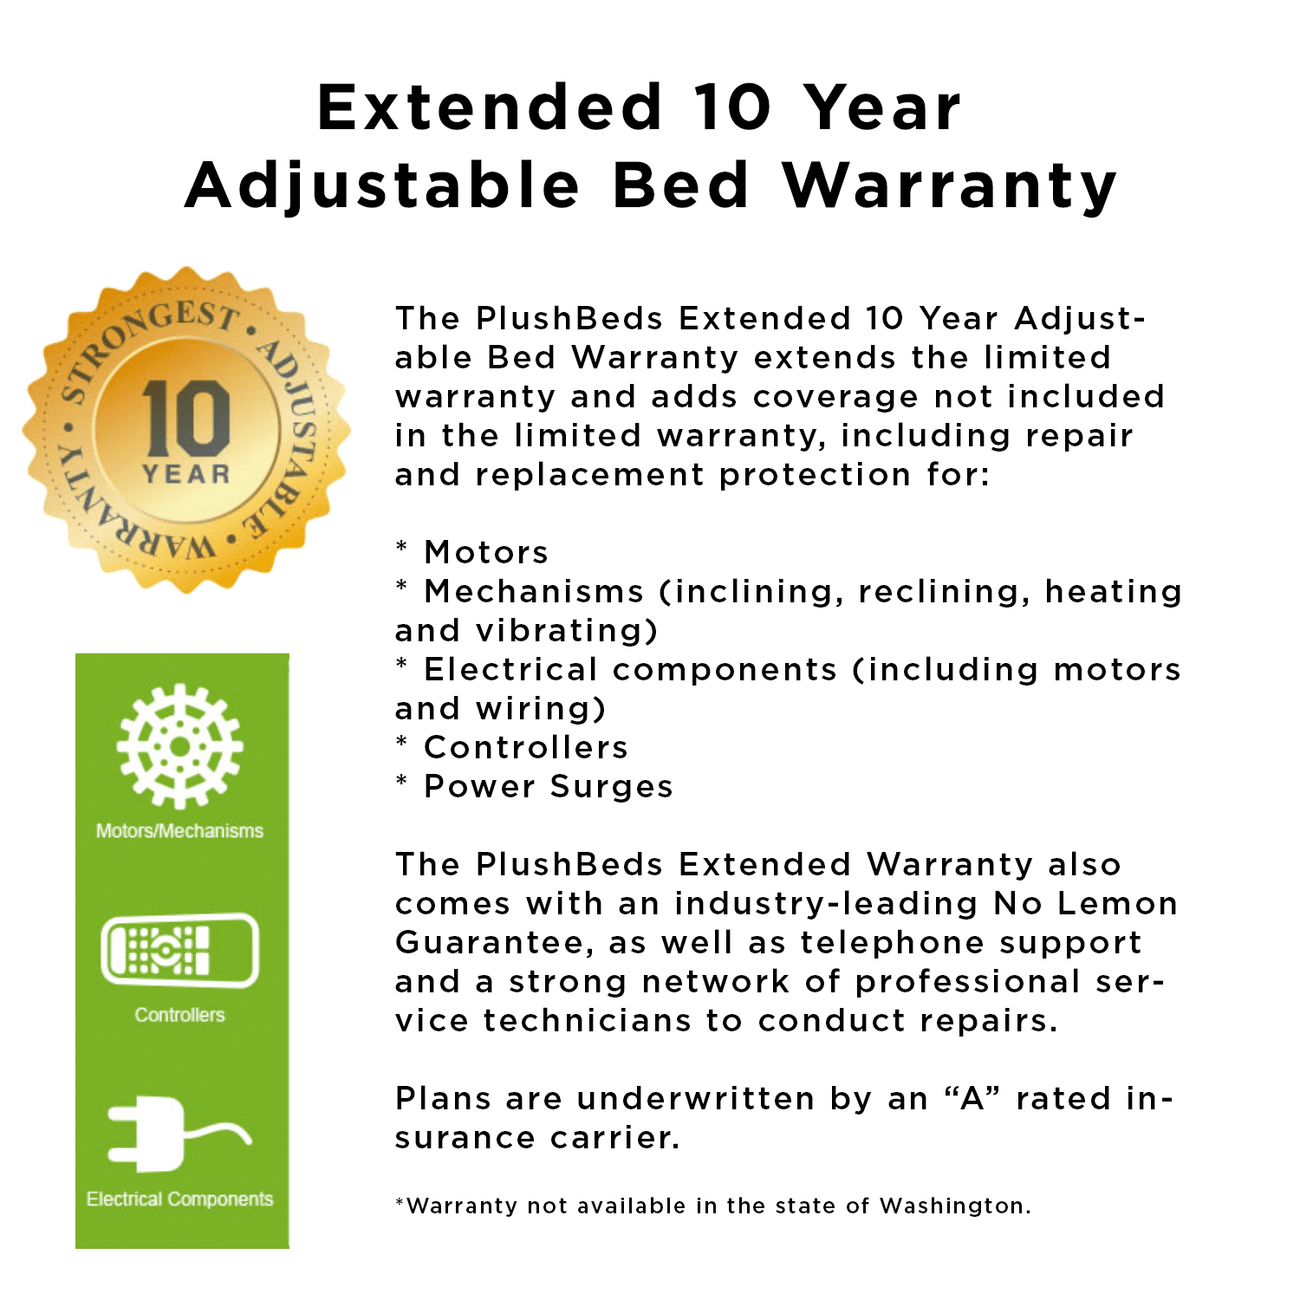 Extended 10 Year Adjustable Bed Warranty - PlushBeds